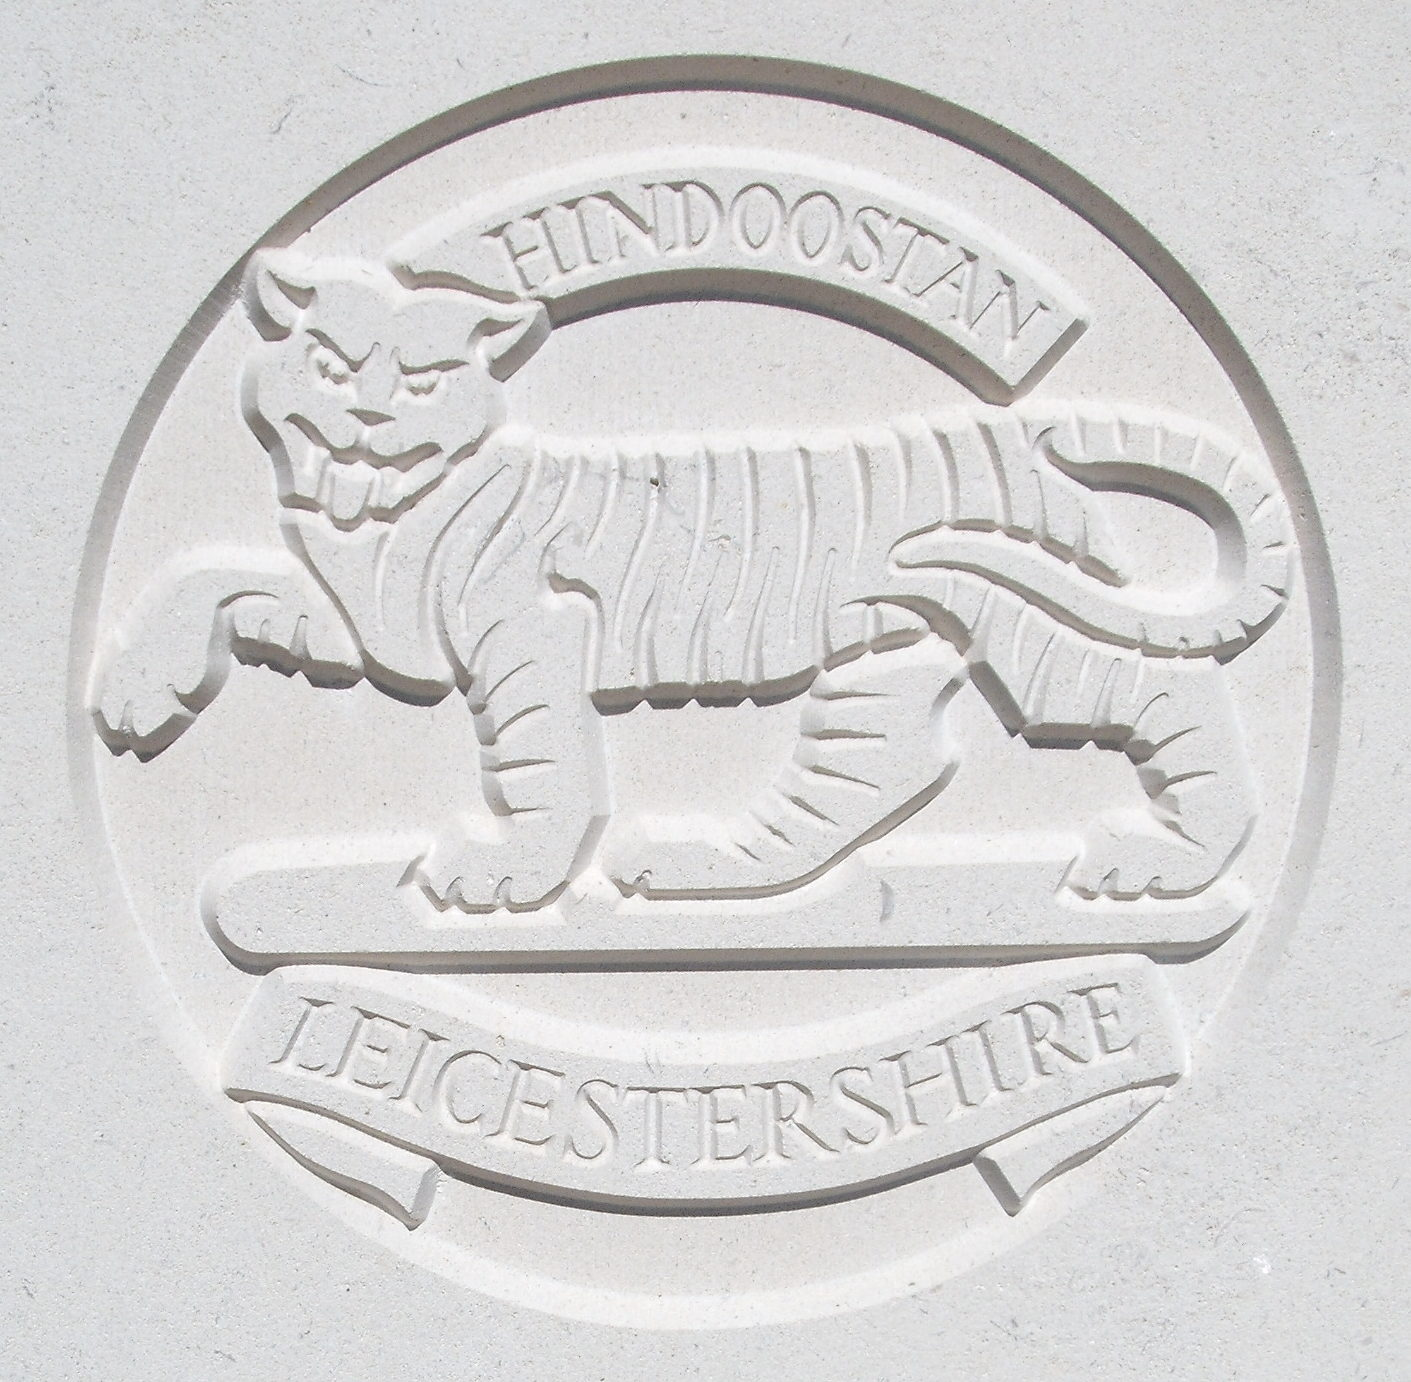 Capbadge of the Leicestershire Regiment on a CWGC headstone